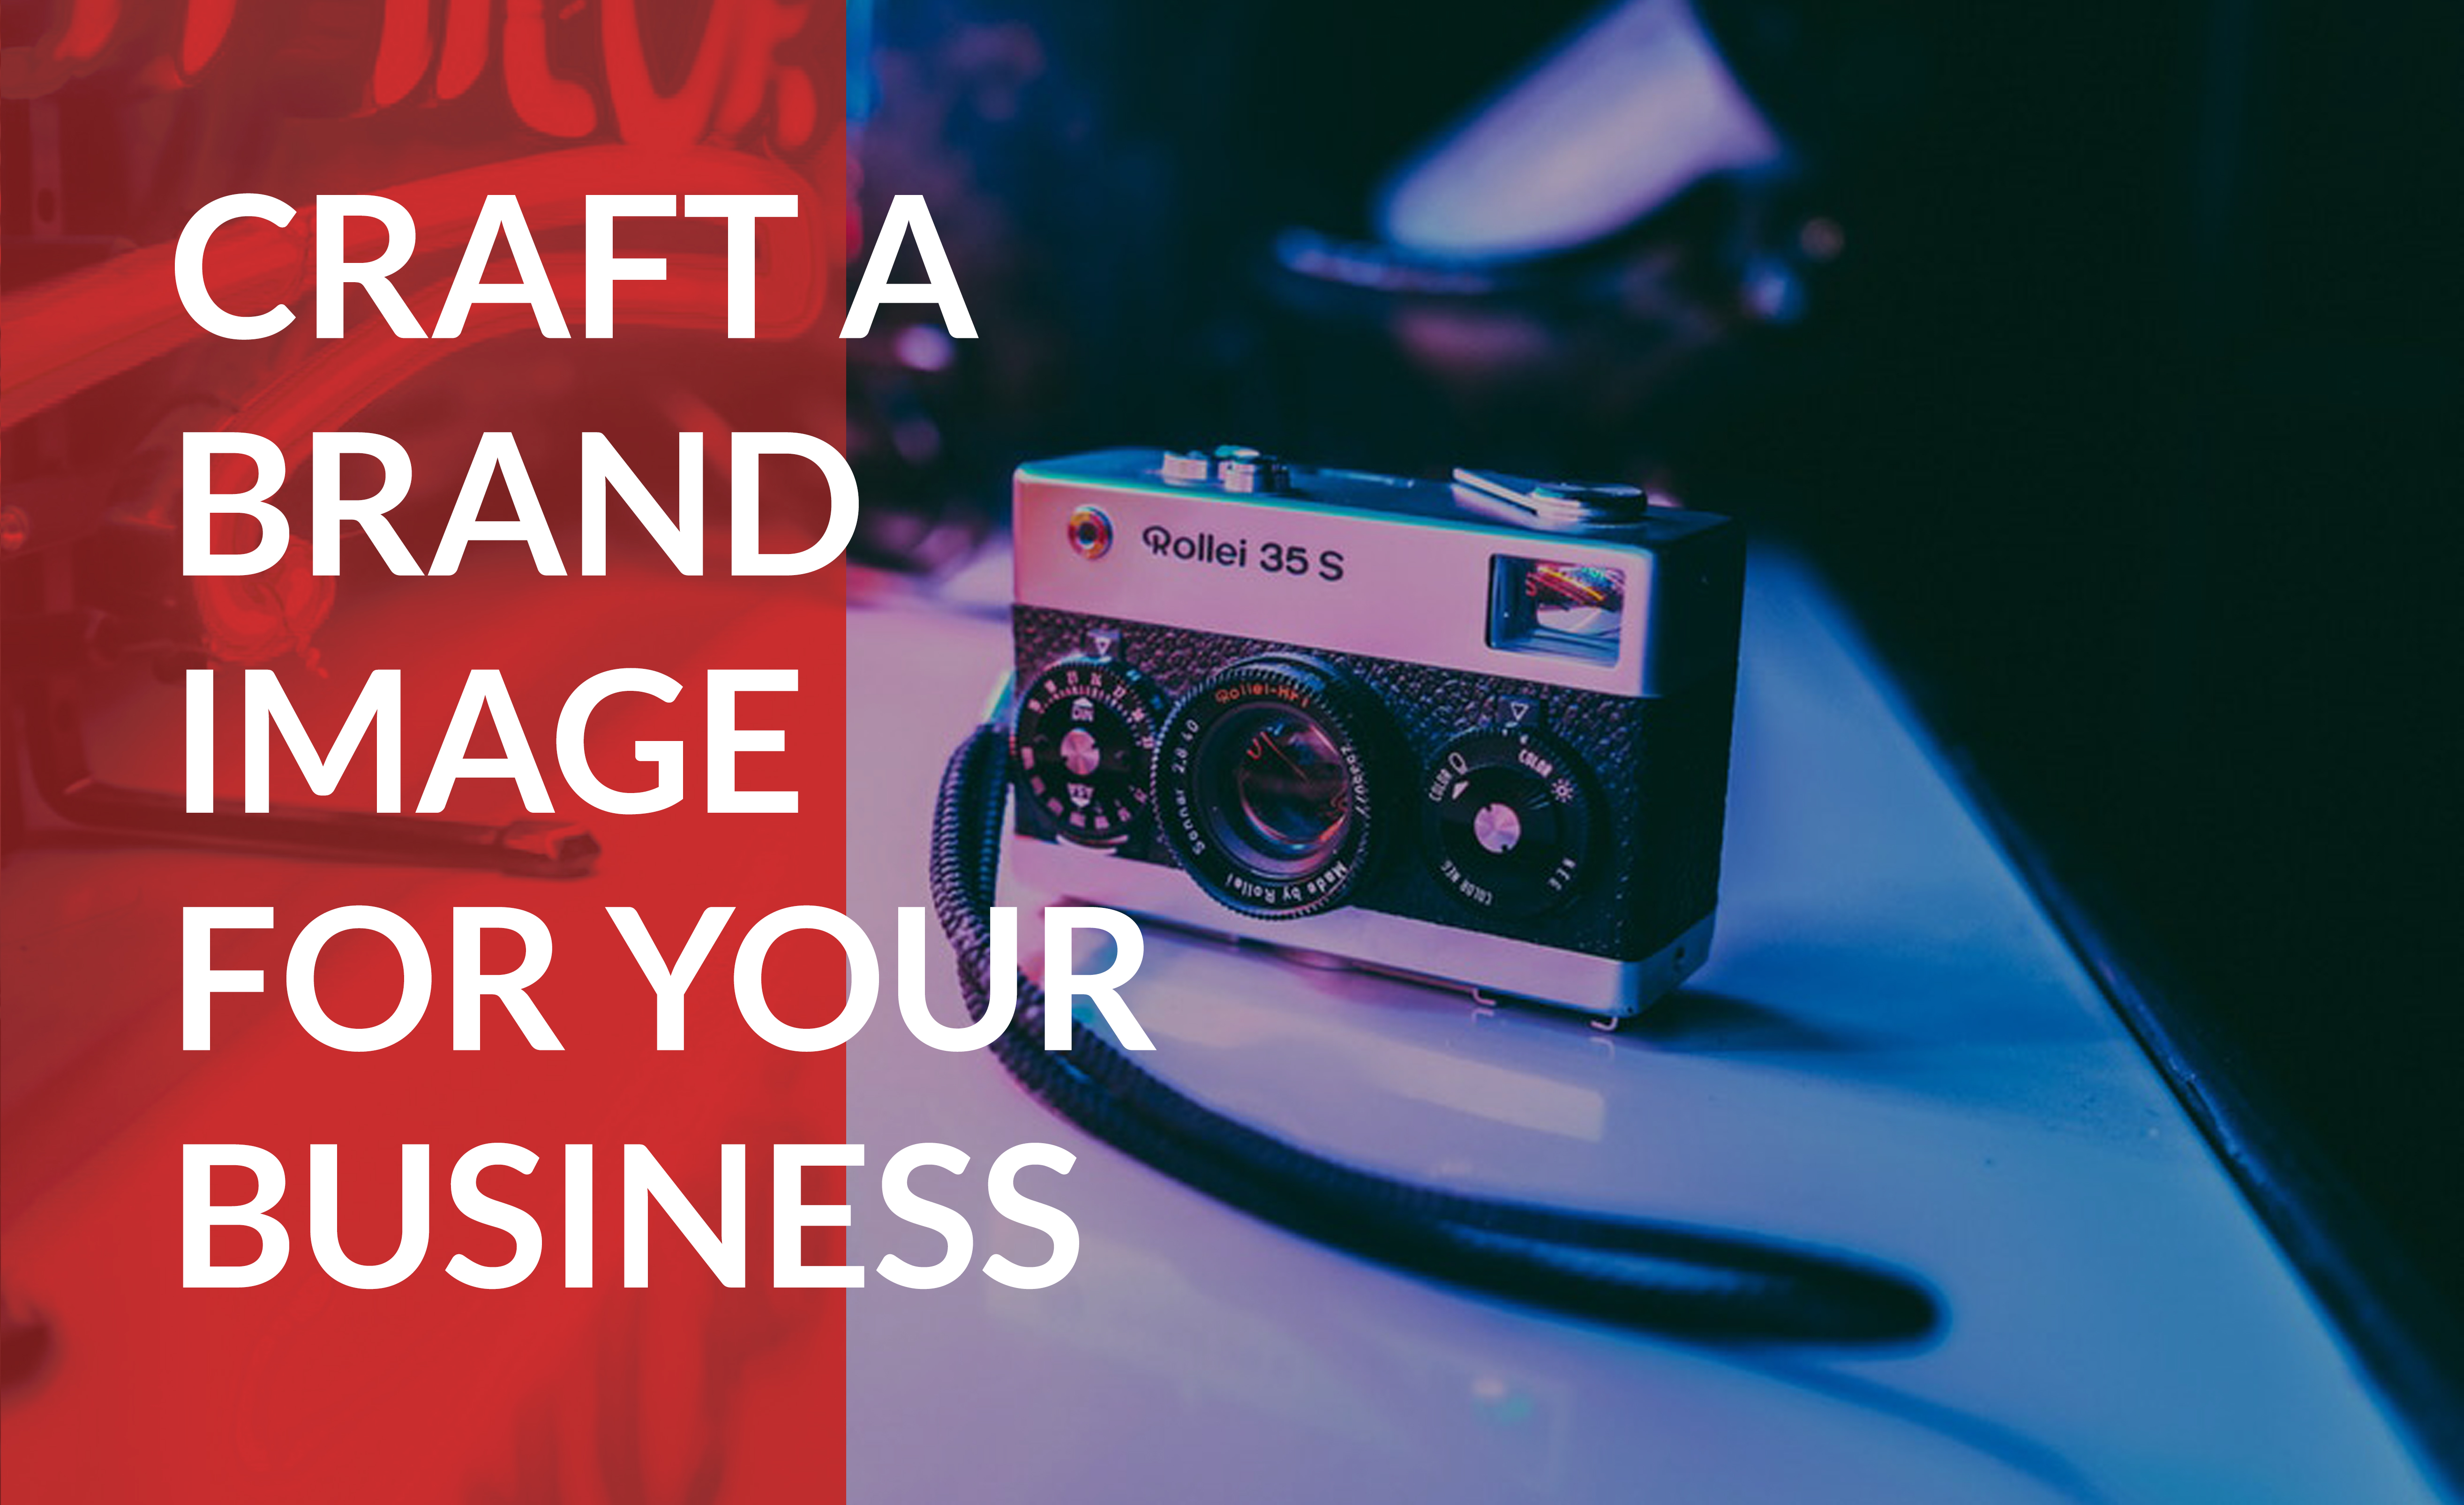 Craft a brand image for your business that speaks to the right audience.